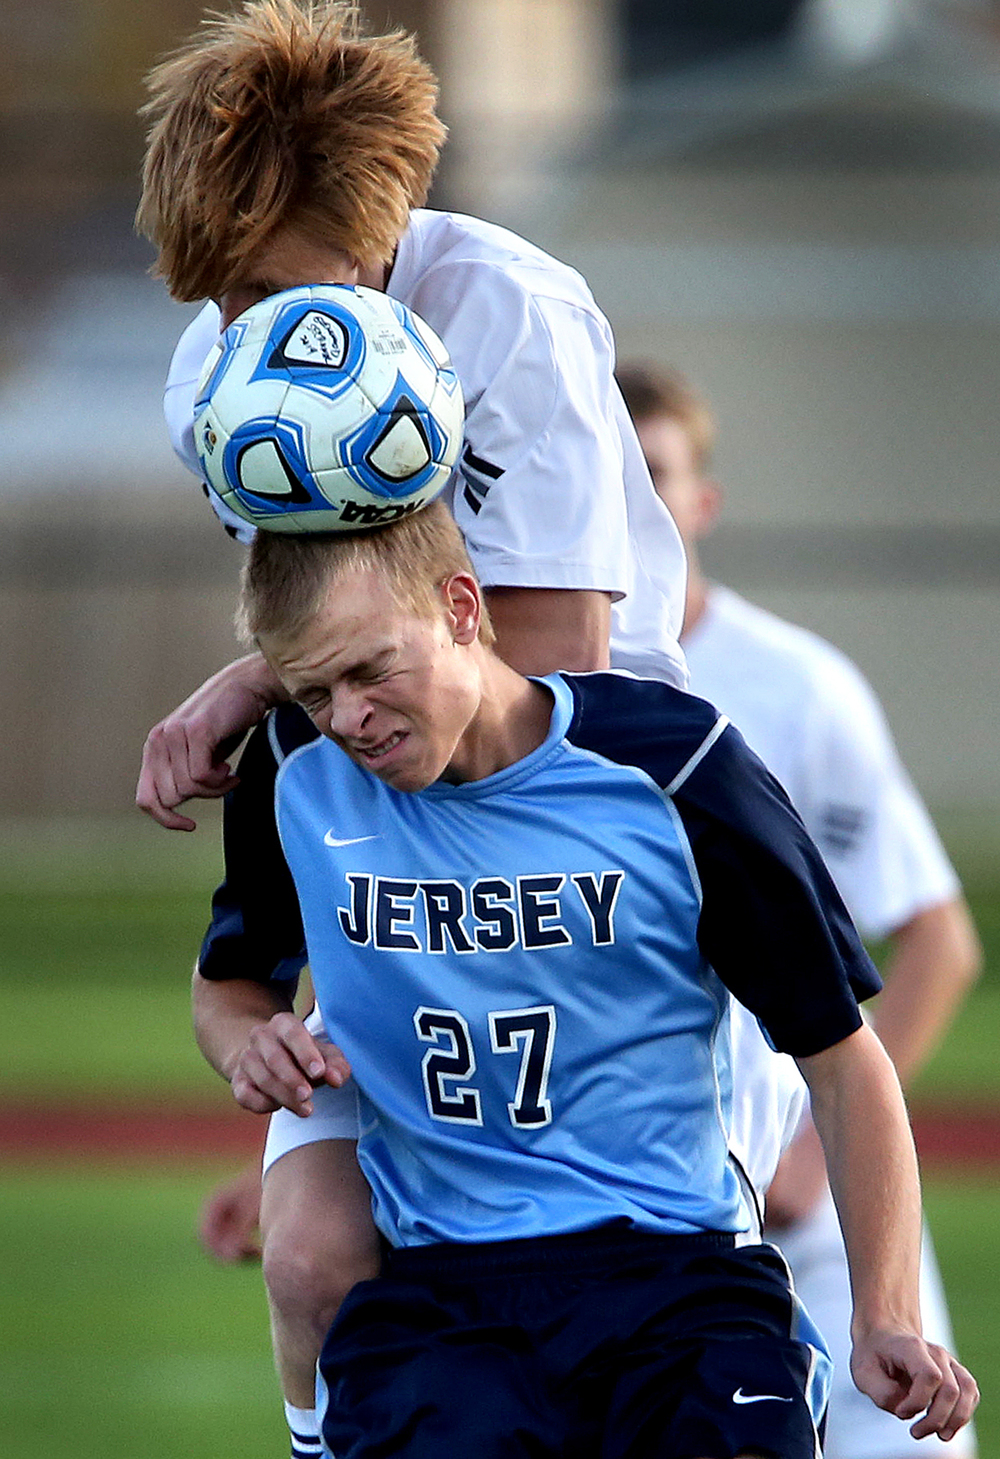 Rockets player Michael Harry and Jersey player Drake Blackwell head the ball at the same time during first half action. The Rochester High School Rockets defeated the Jerseyville High School Panthers 4-1 at the boys Class 2A Chatham Glenwood Sectional soccer tournament at Glenwood High School on Tuesday, Oct. 28, 2014. David Spencer/The State Journal-Register